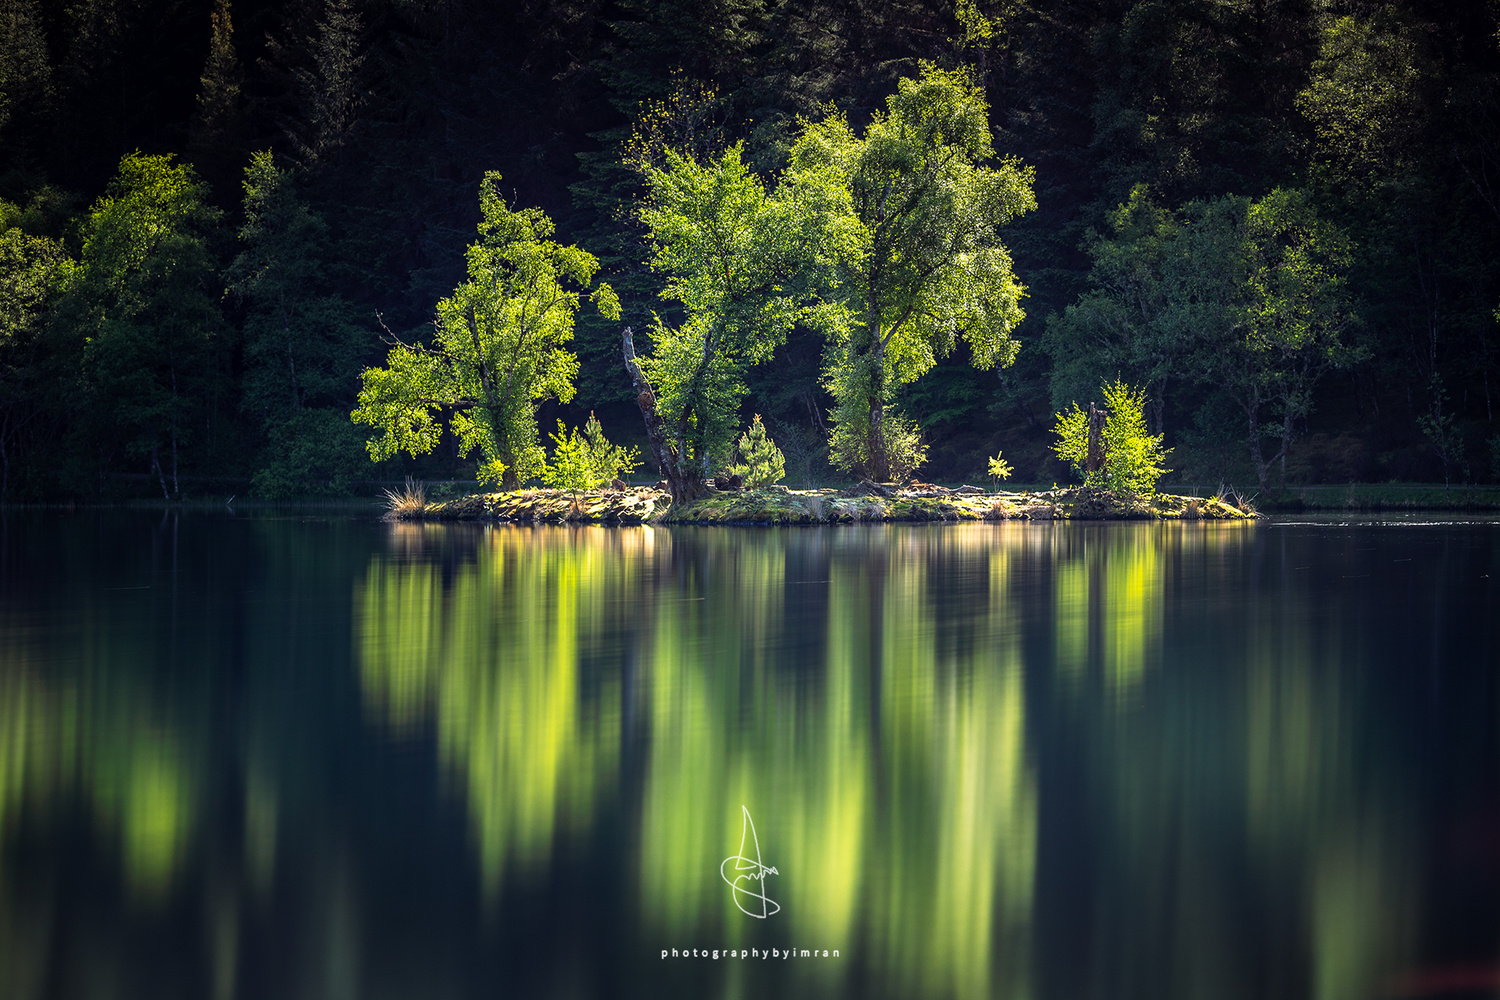 Trees at Glen Coe Lochan by Imran Mirza